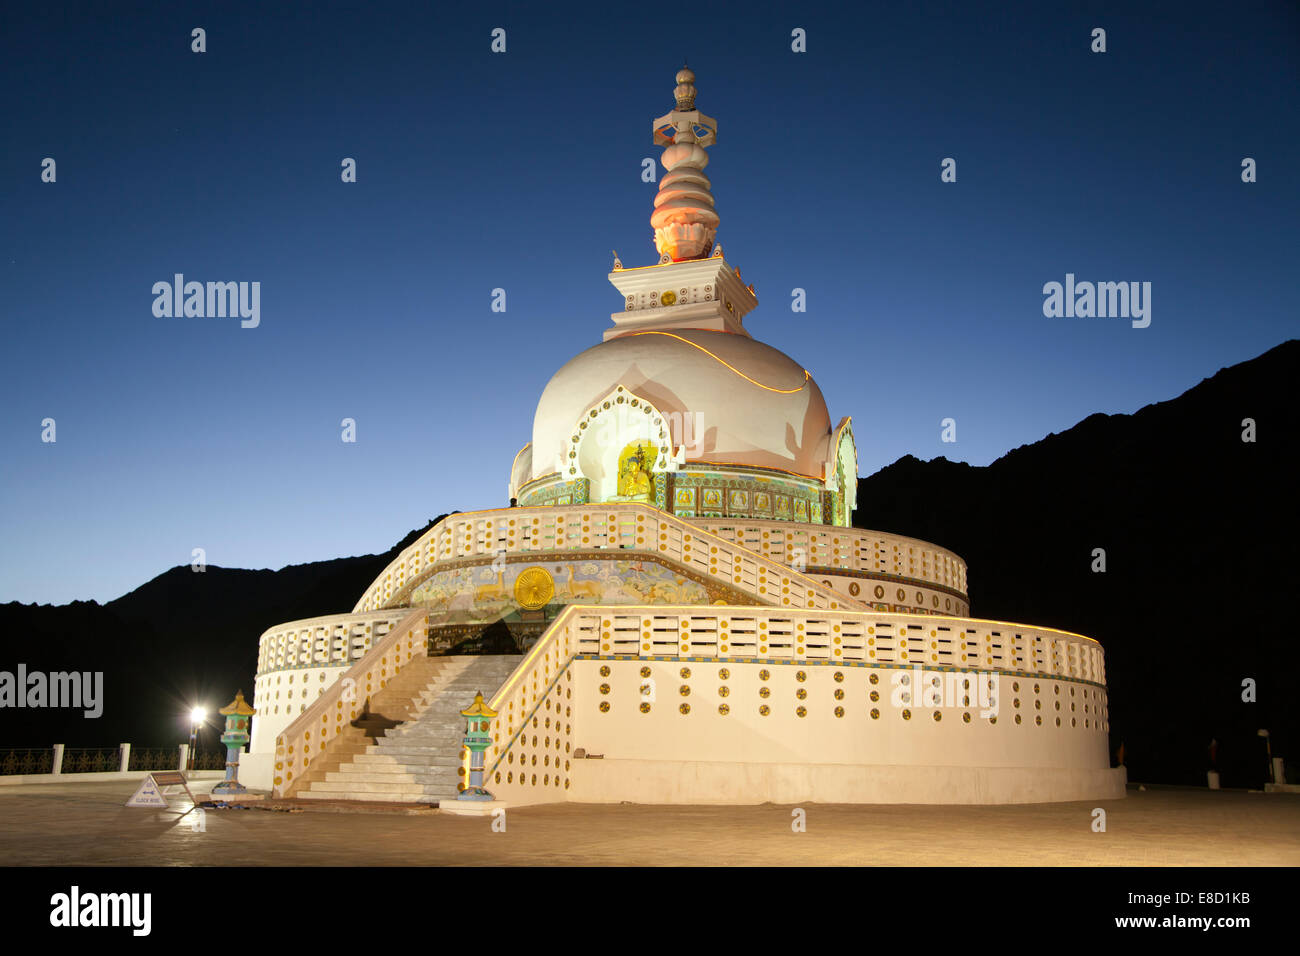 Shanti Stupa a Buddhist white-domed stupa on a hilltop in Leh, Ladakh, in the Indian state of Jammu and Kashmir Stock Photo